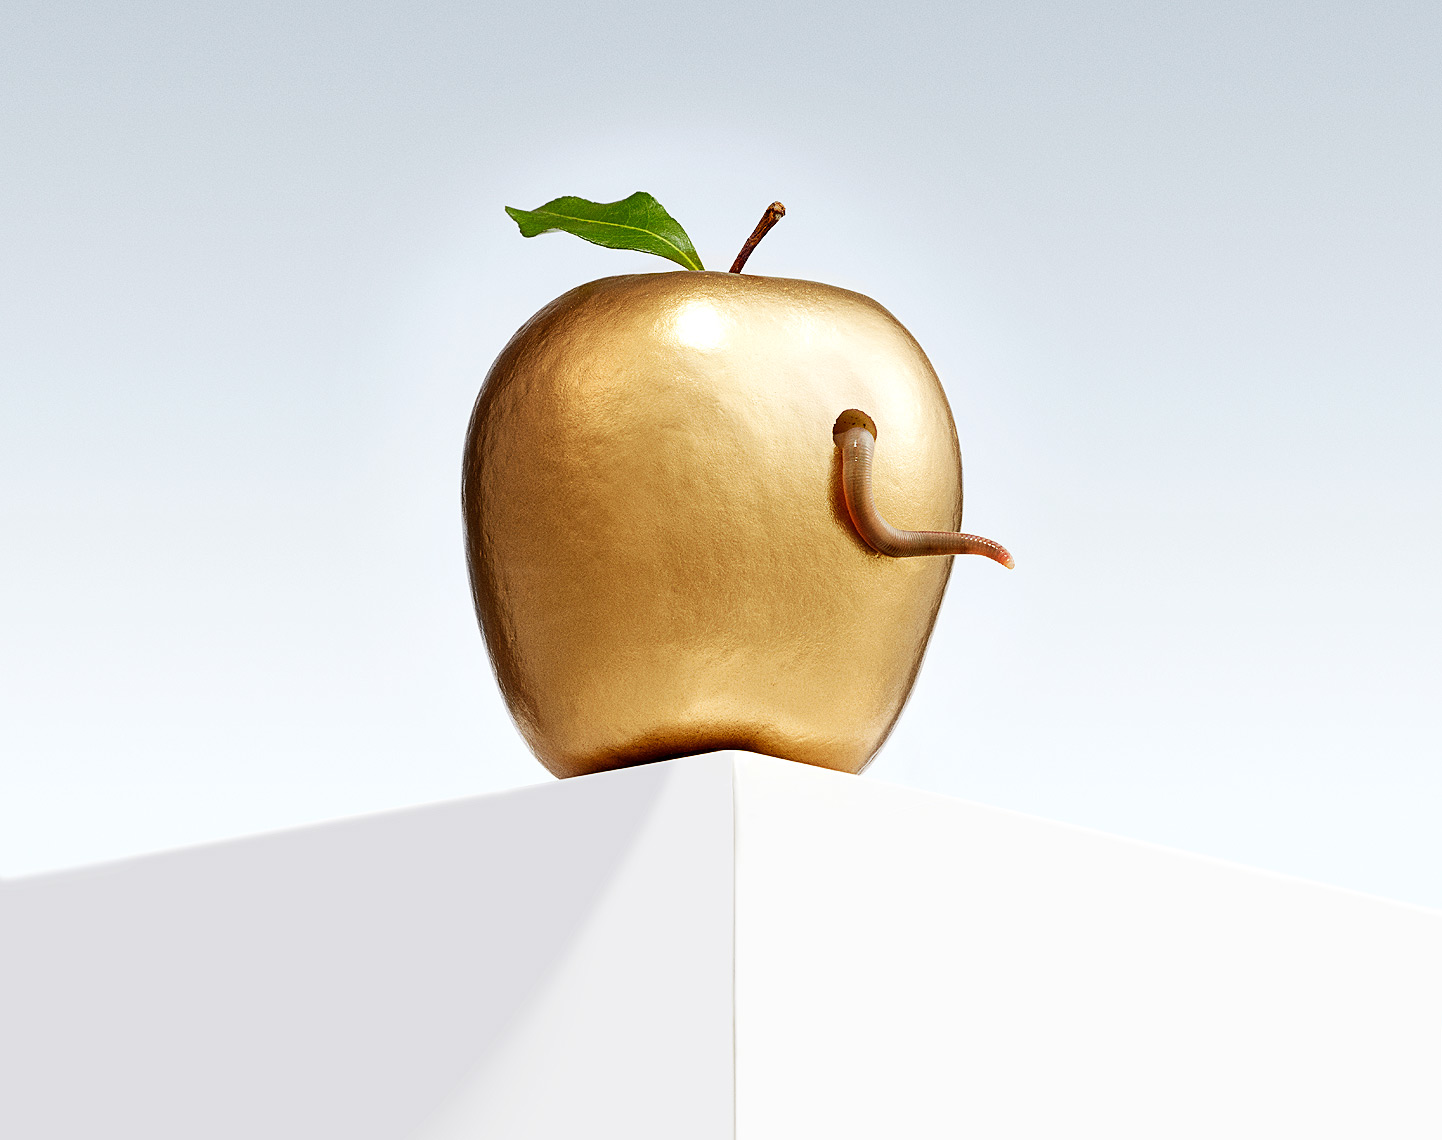 One bad apple with worm conceptual photo by John Kuczala